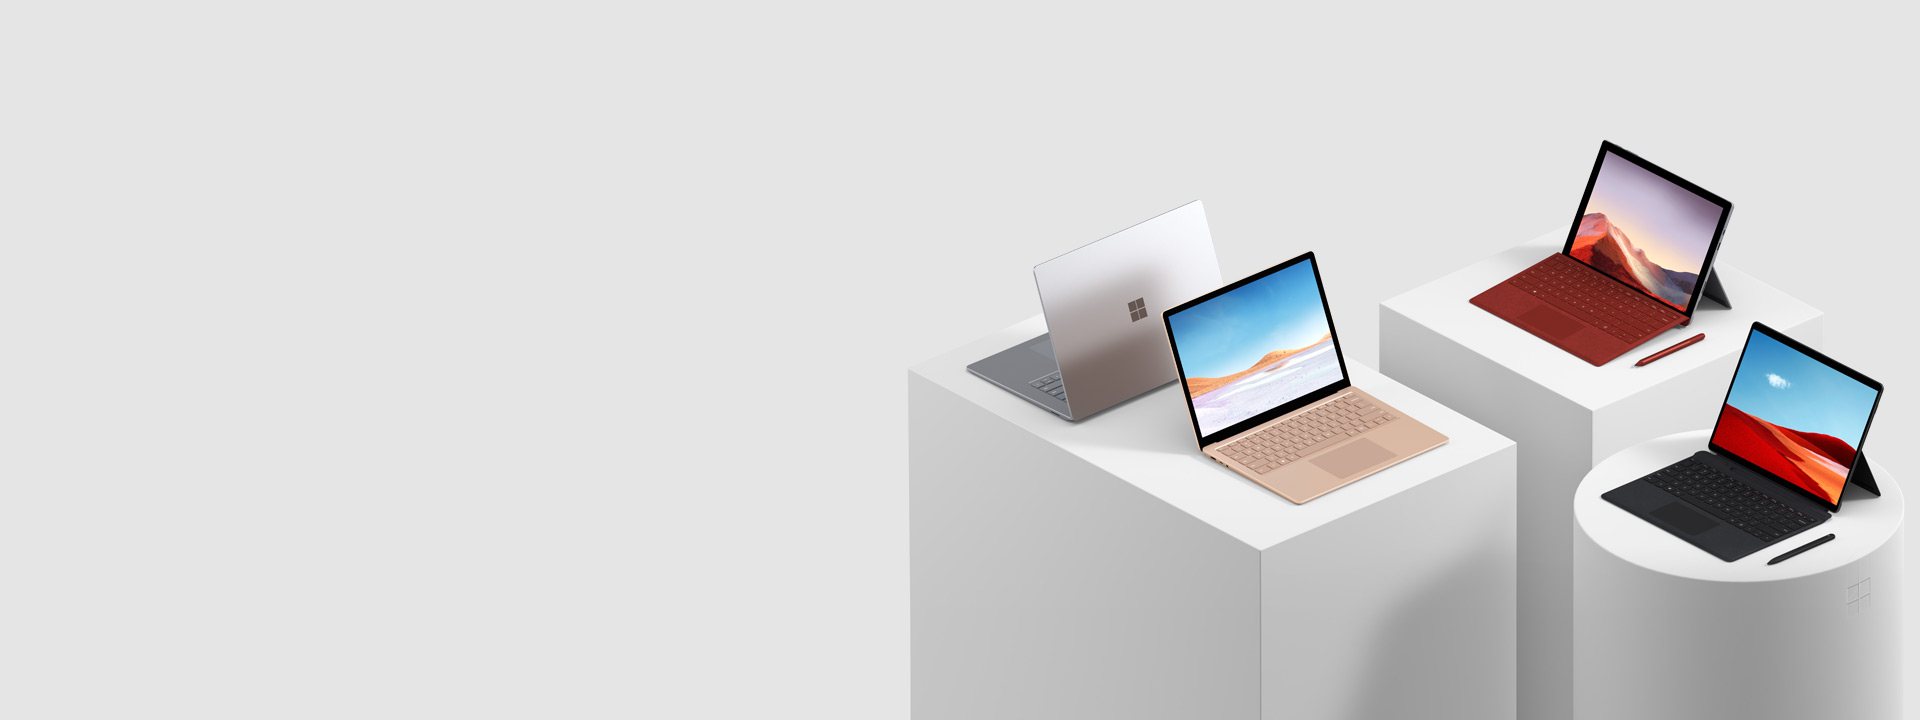 Several computers from Surface including Surface Pro 7, Surface Pro X, Surface Book 2, Surface Studio 2, and Surface Go